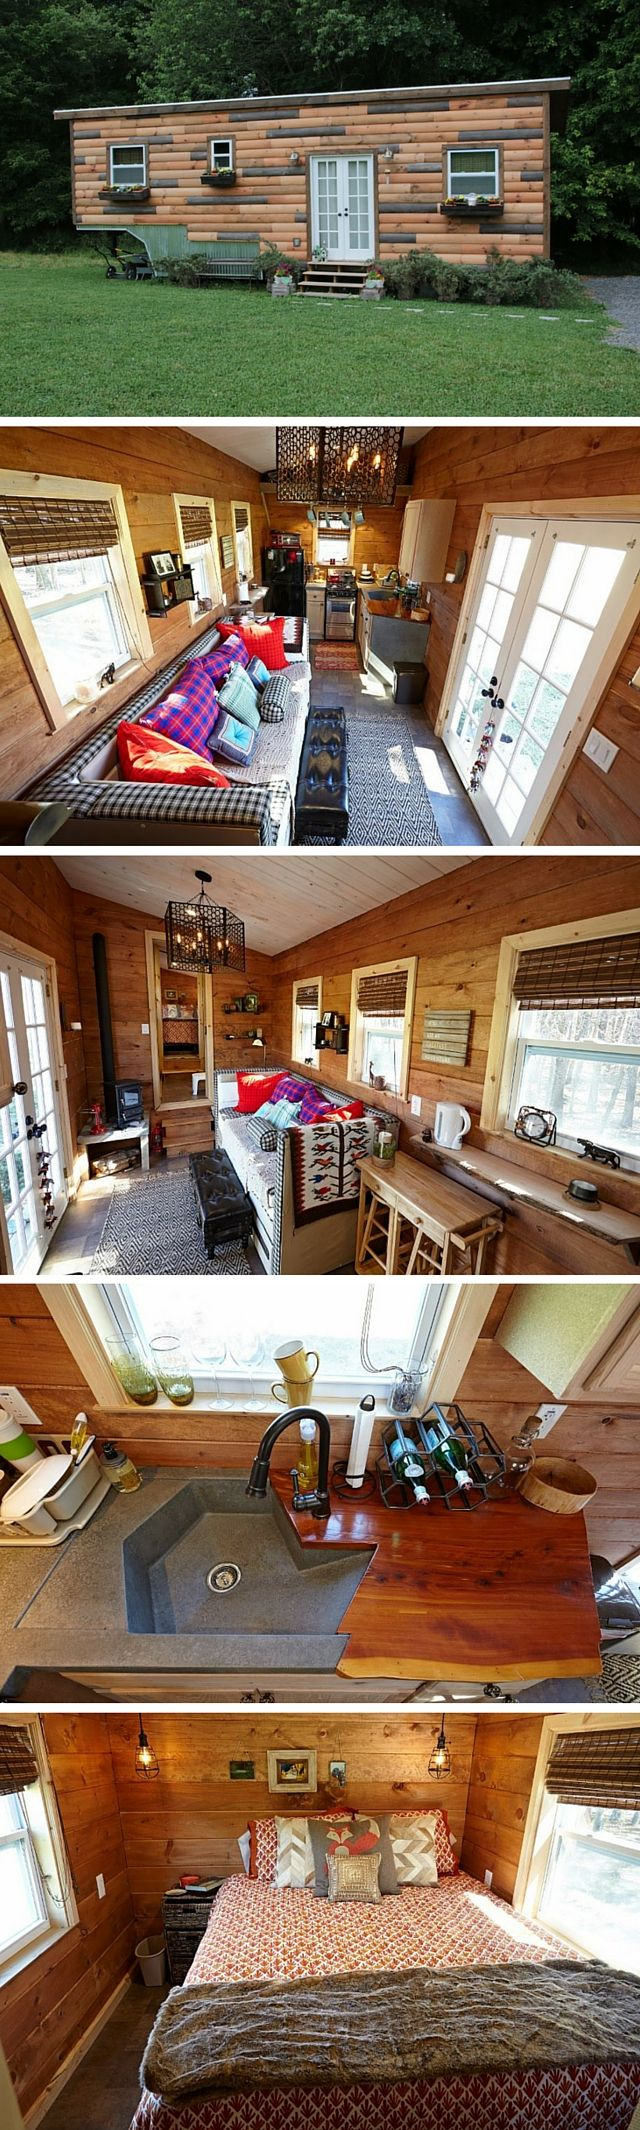 The Nomad Nest: a 276 sq ft tiny house by Wind River Tiny Homes